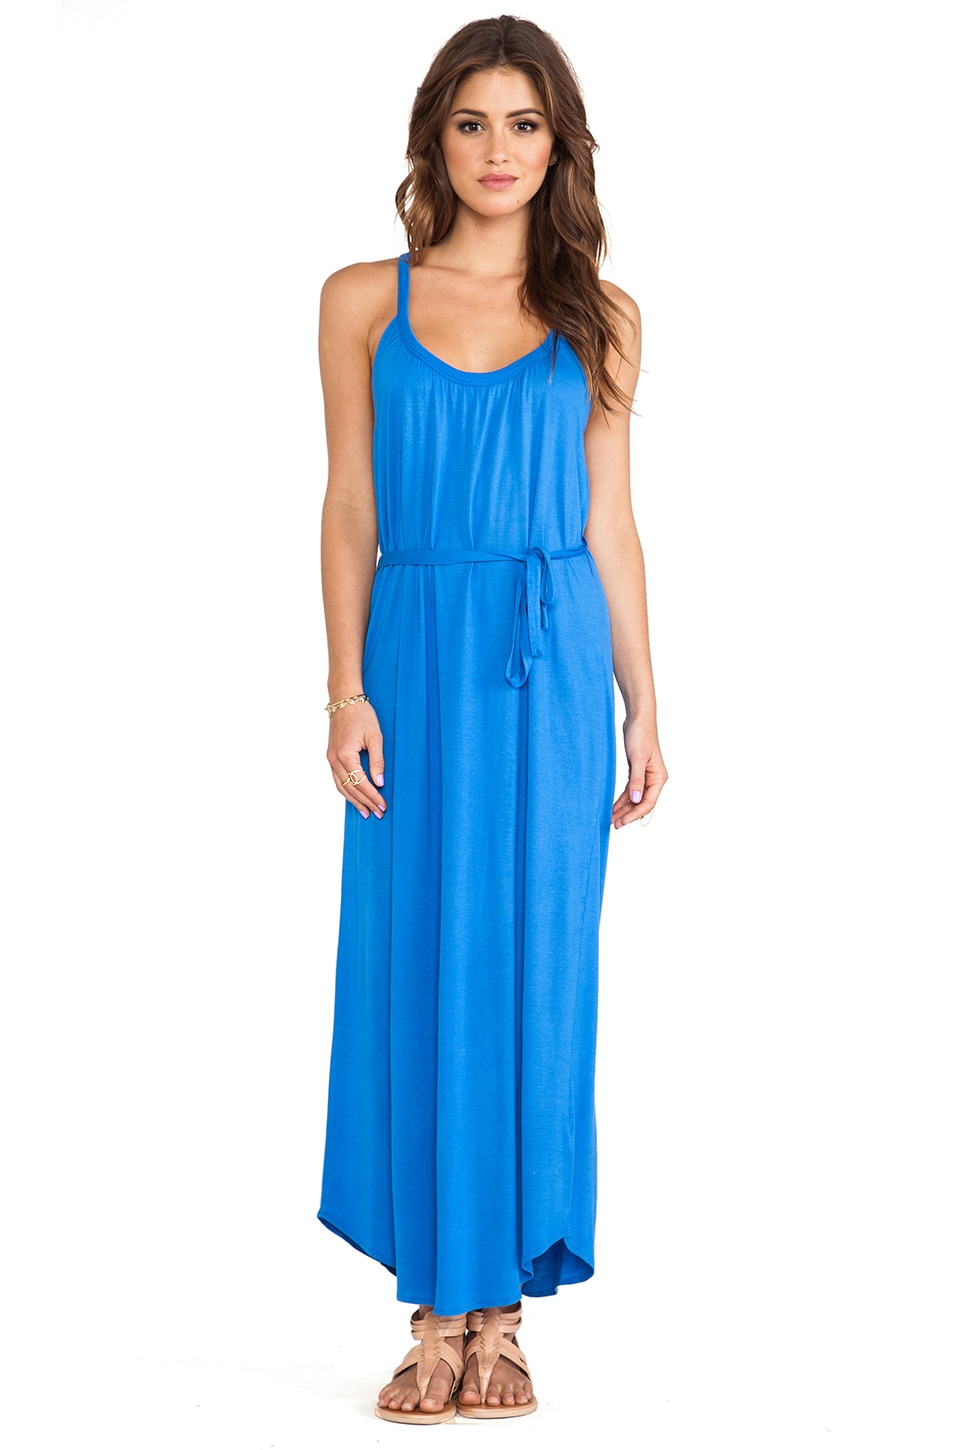 Soft Joie Laguna Maxi Dress in Azul